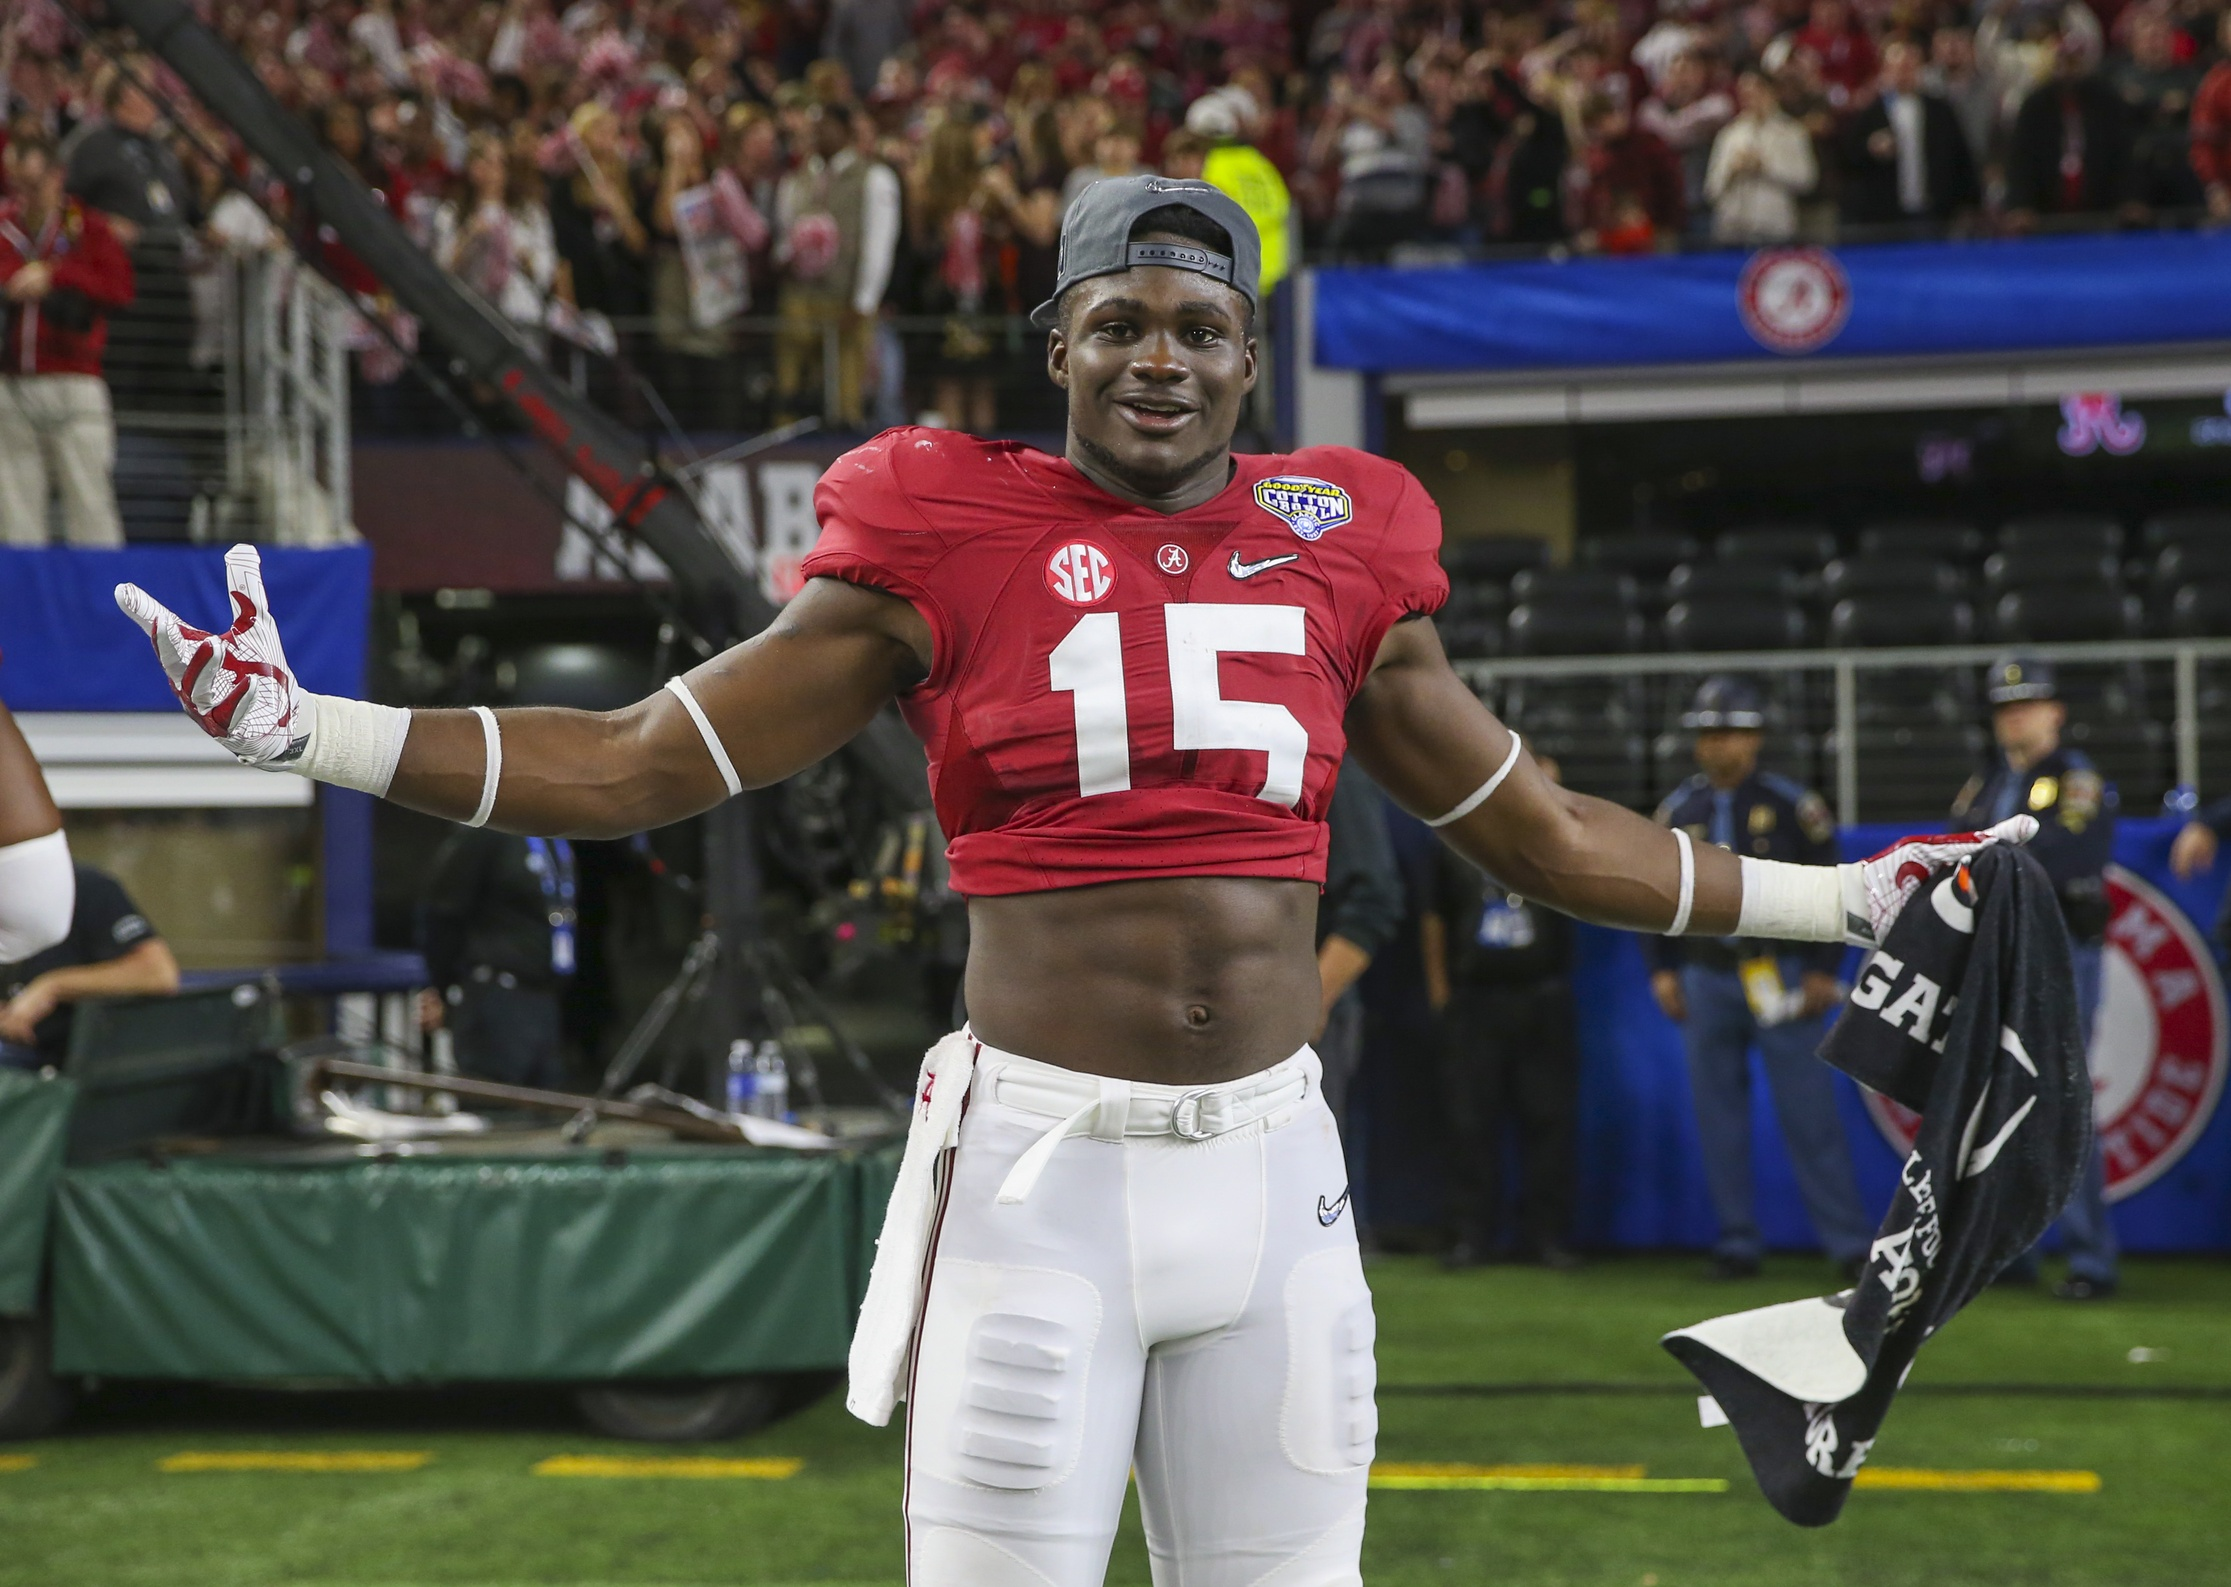 Dec 31, 2015; Arlington, TX, USA; Alabama Crimson Tide defensive back Ronnie Harrison (15) celebrates after the victory against the Michigan State Spartans in the 2015 CFP semifinal at the Cotton Bowl at AT&T Stadium. Mandatory Credit: Kevin Jairaj-USA TODAY Sports